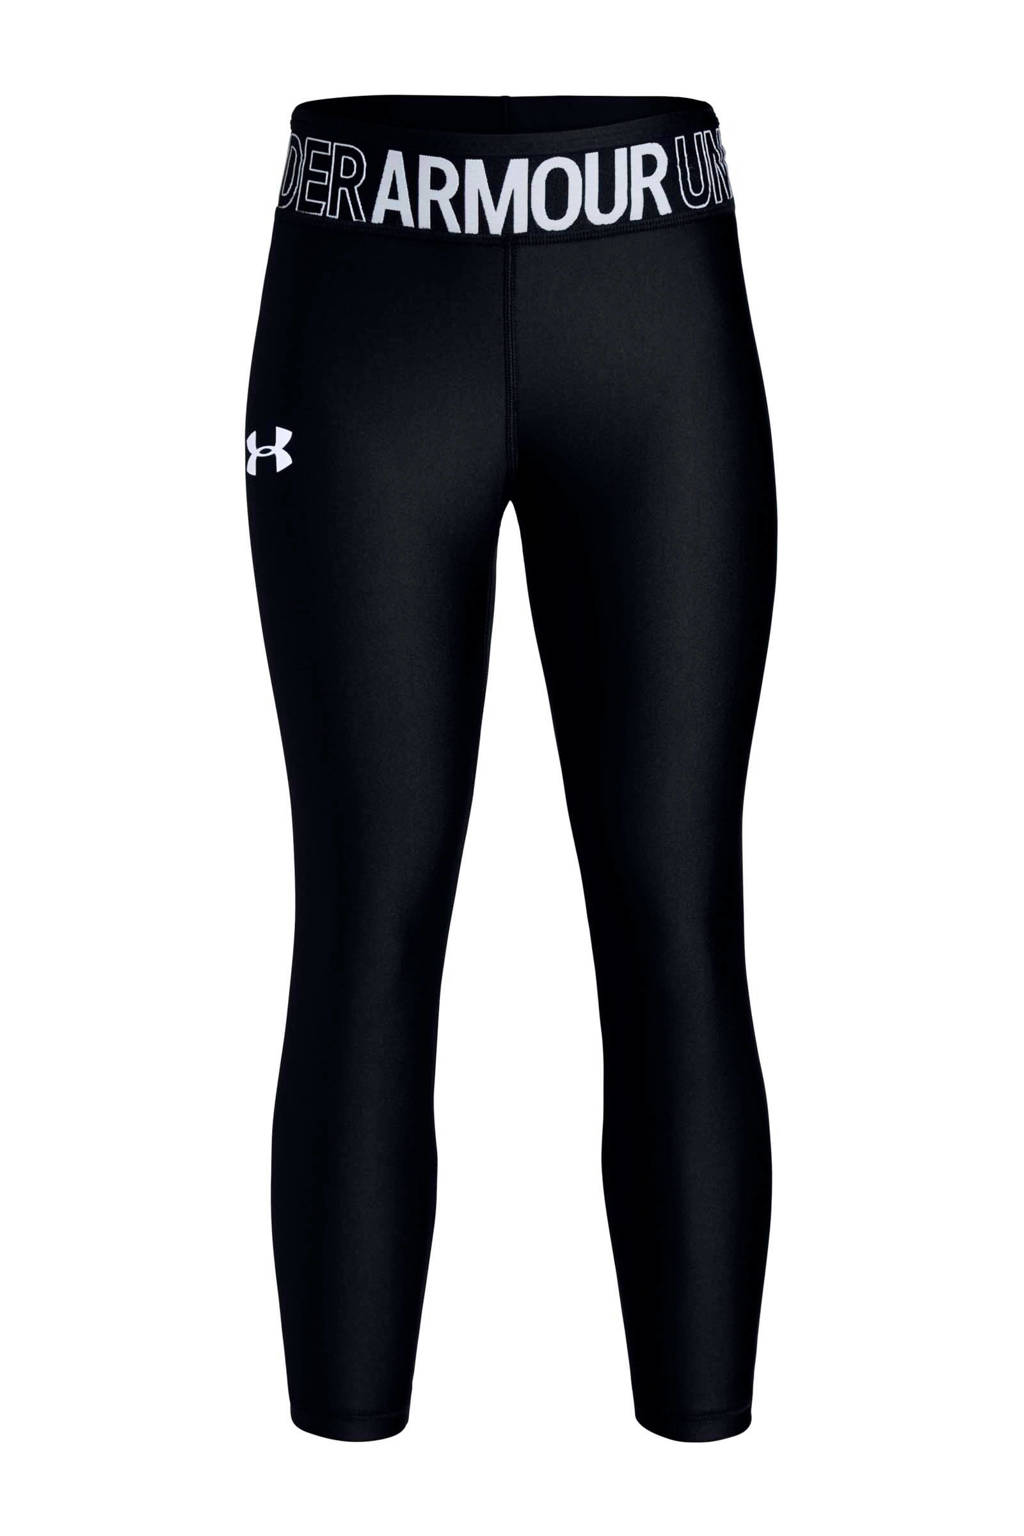 Under Armour sportcapri zwart, Zwart